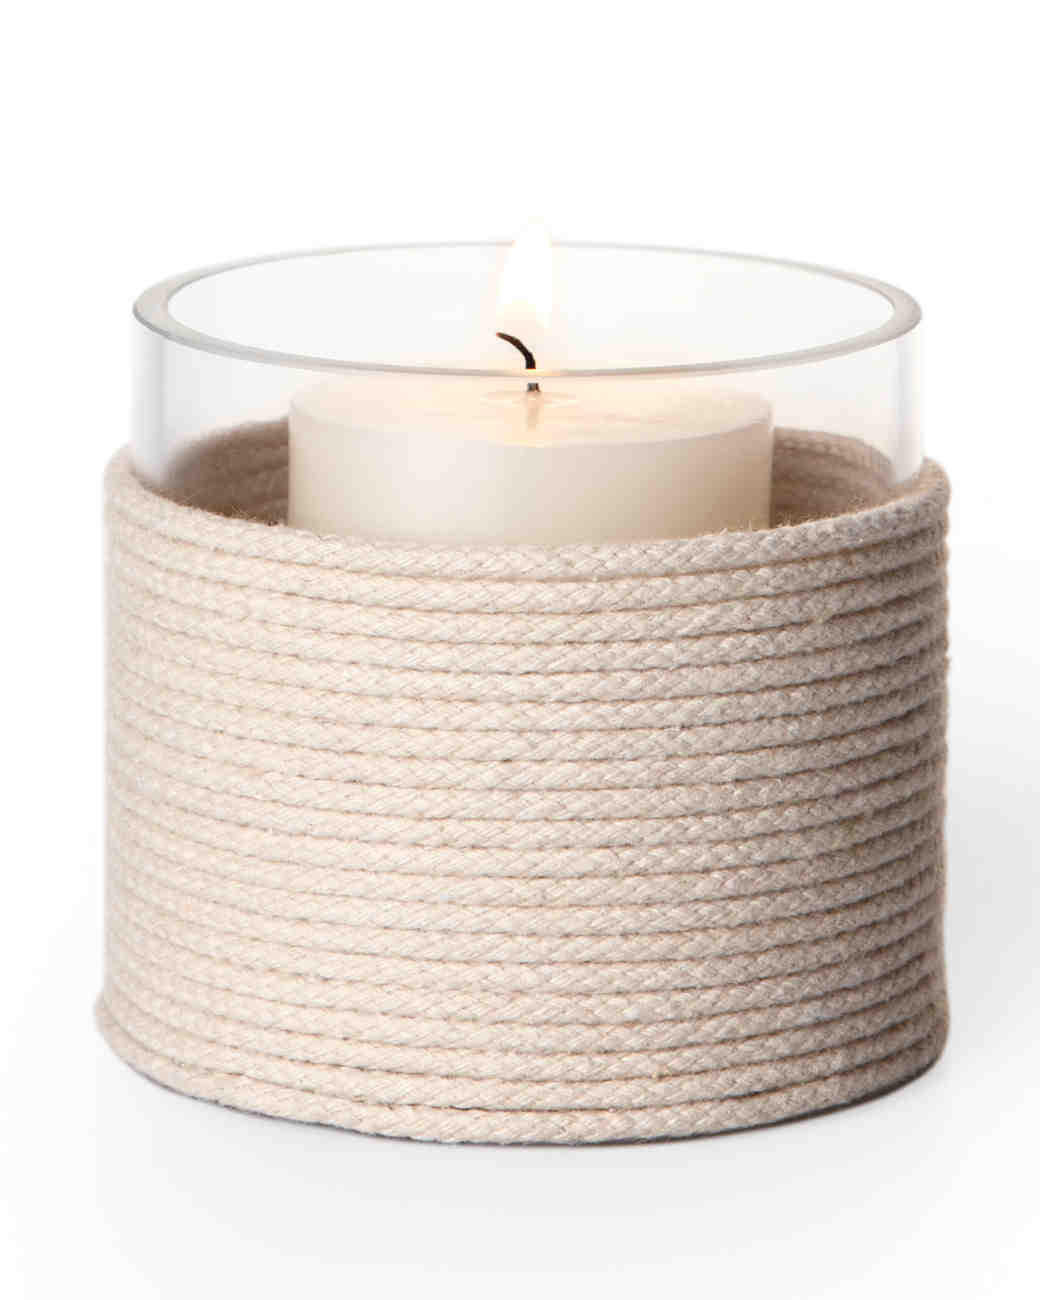 Candle Wrapped in Rope